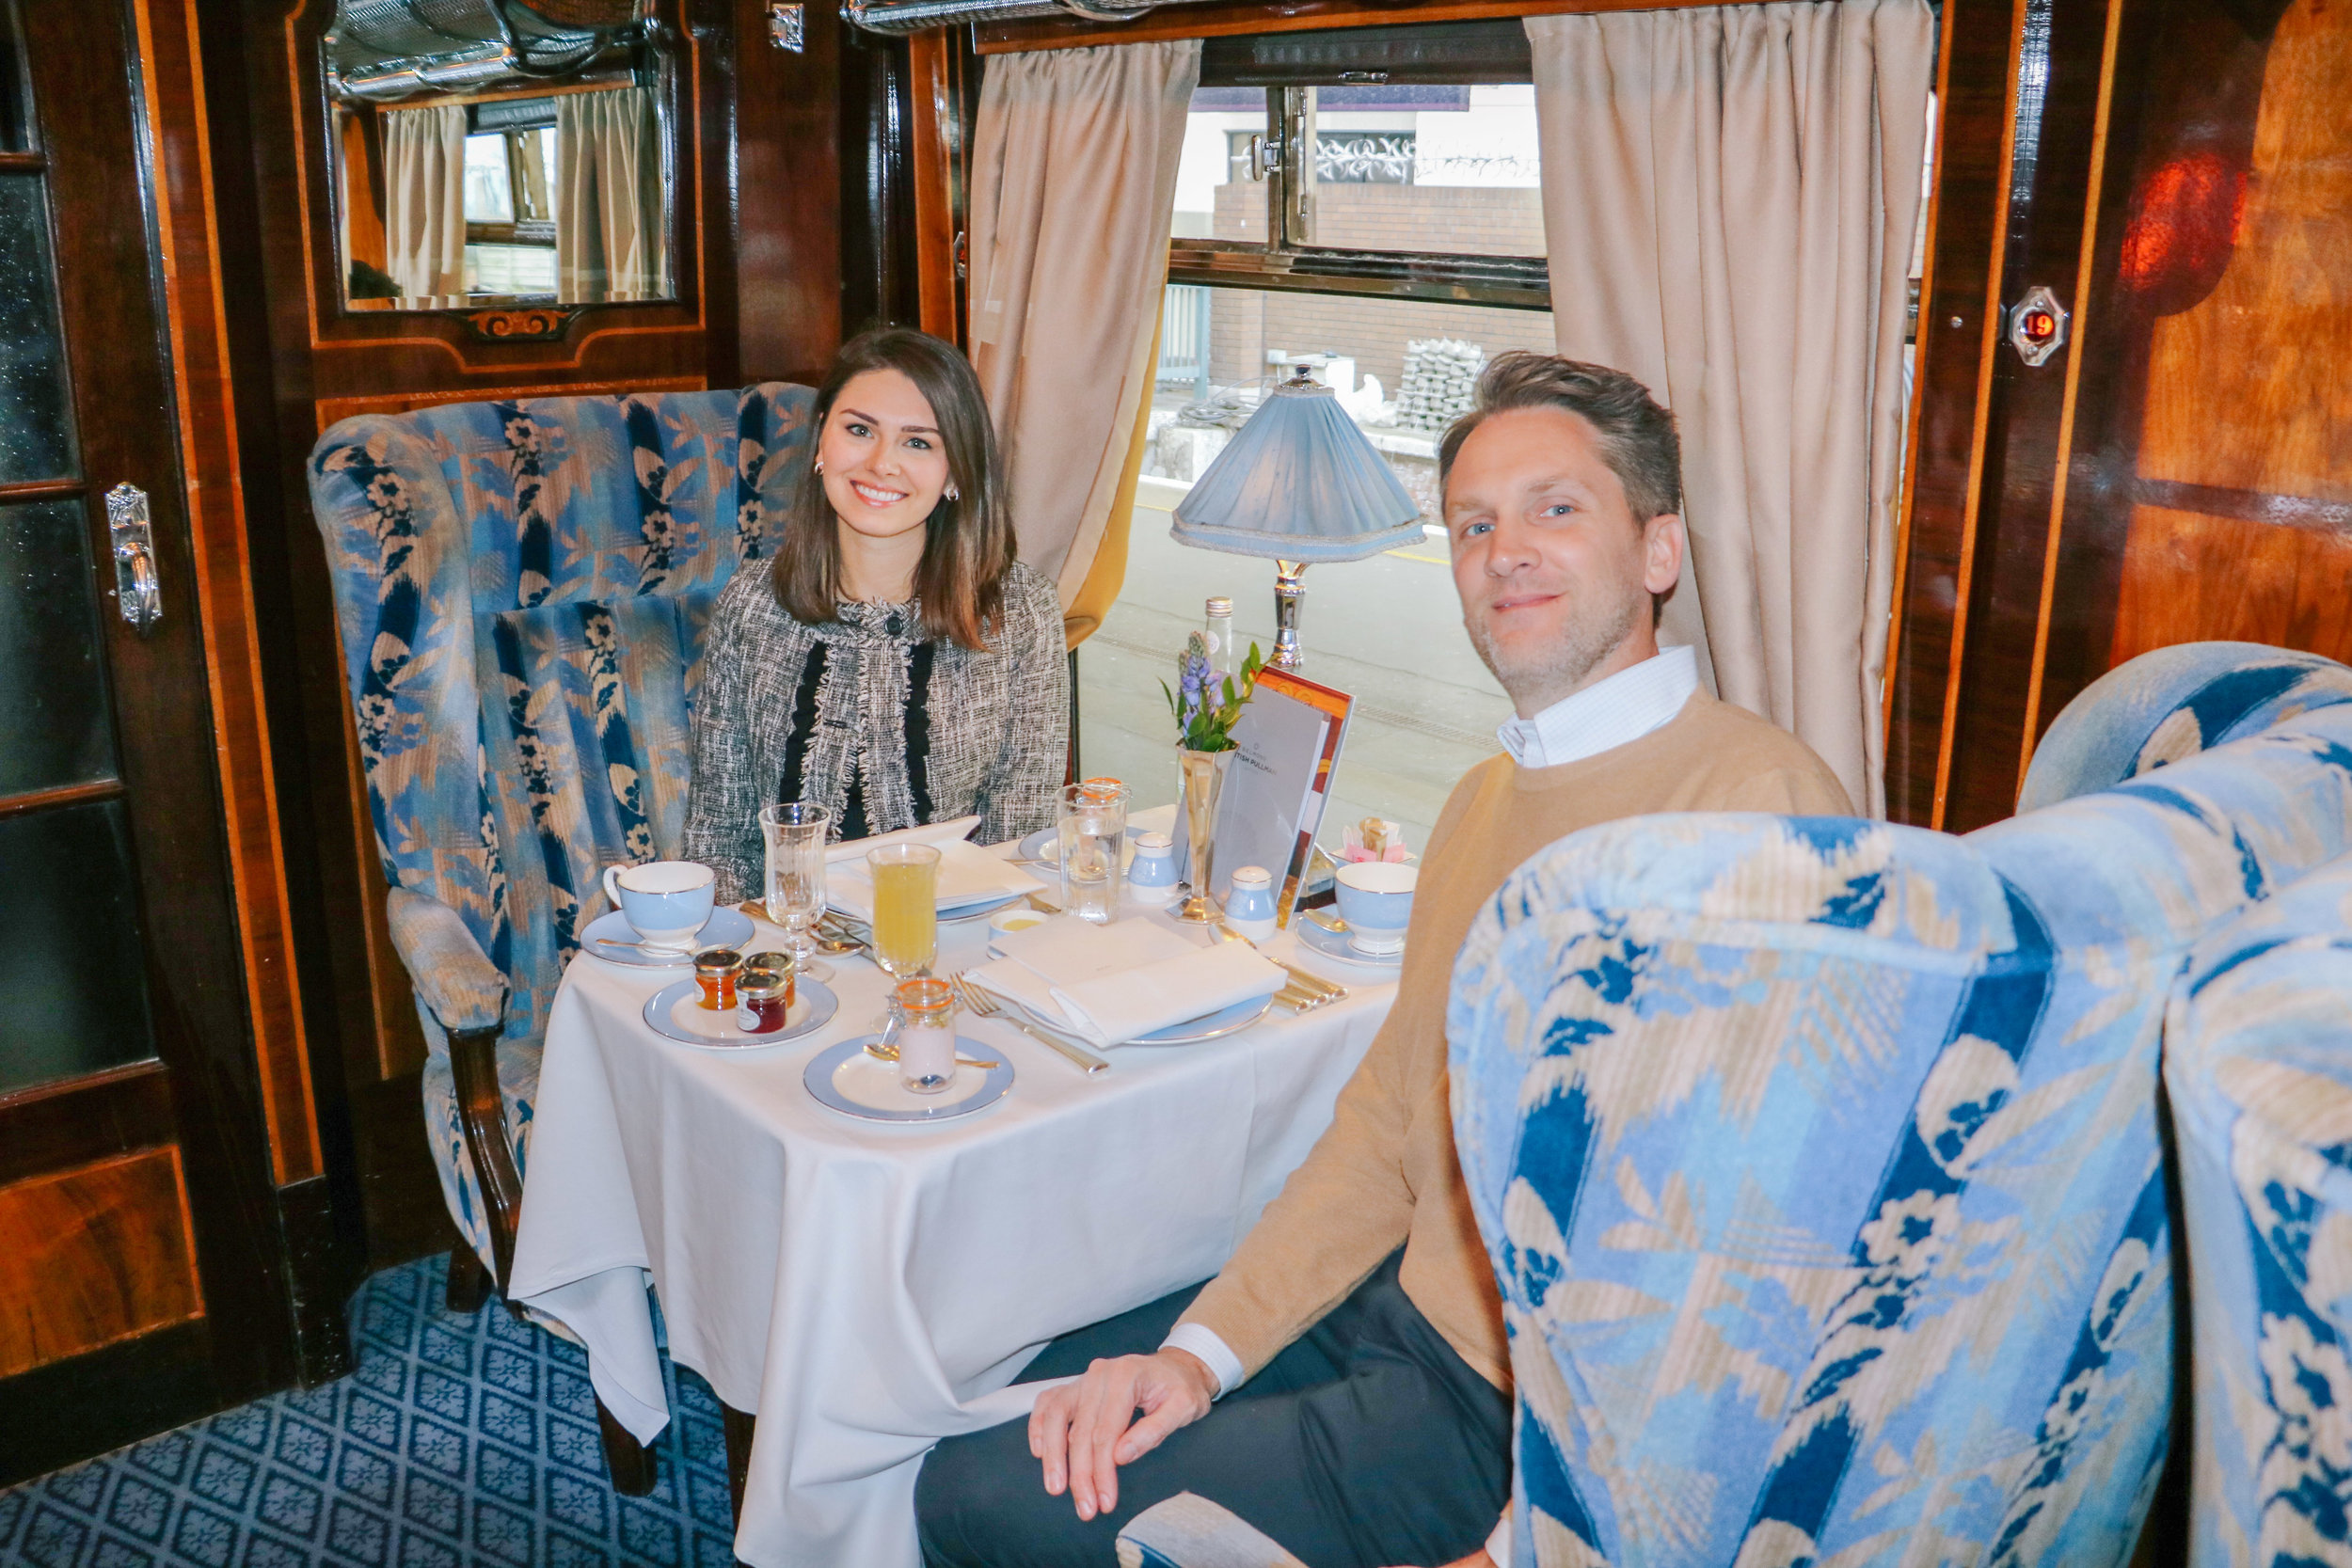 Timeless Travel Across Great Britain: My Journey on the Belmond British Pullman - by Courtney Brown